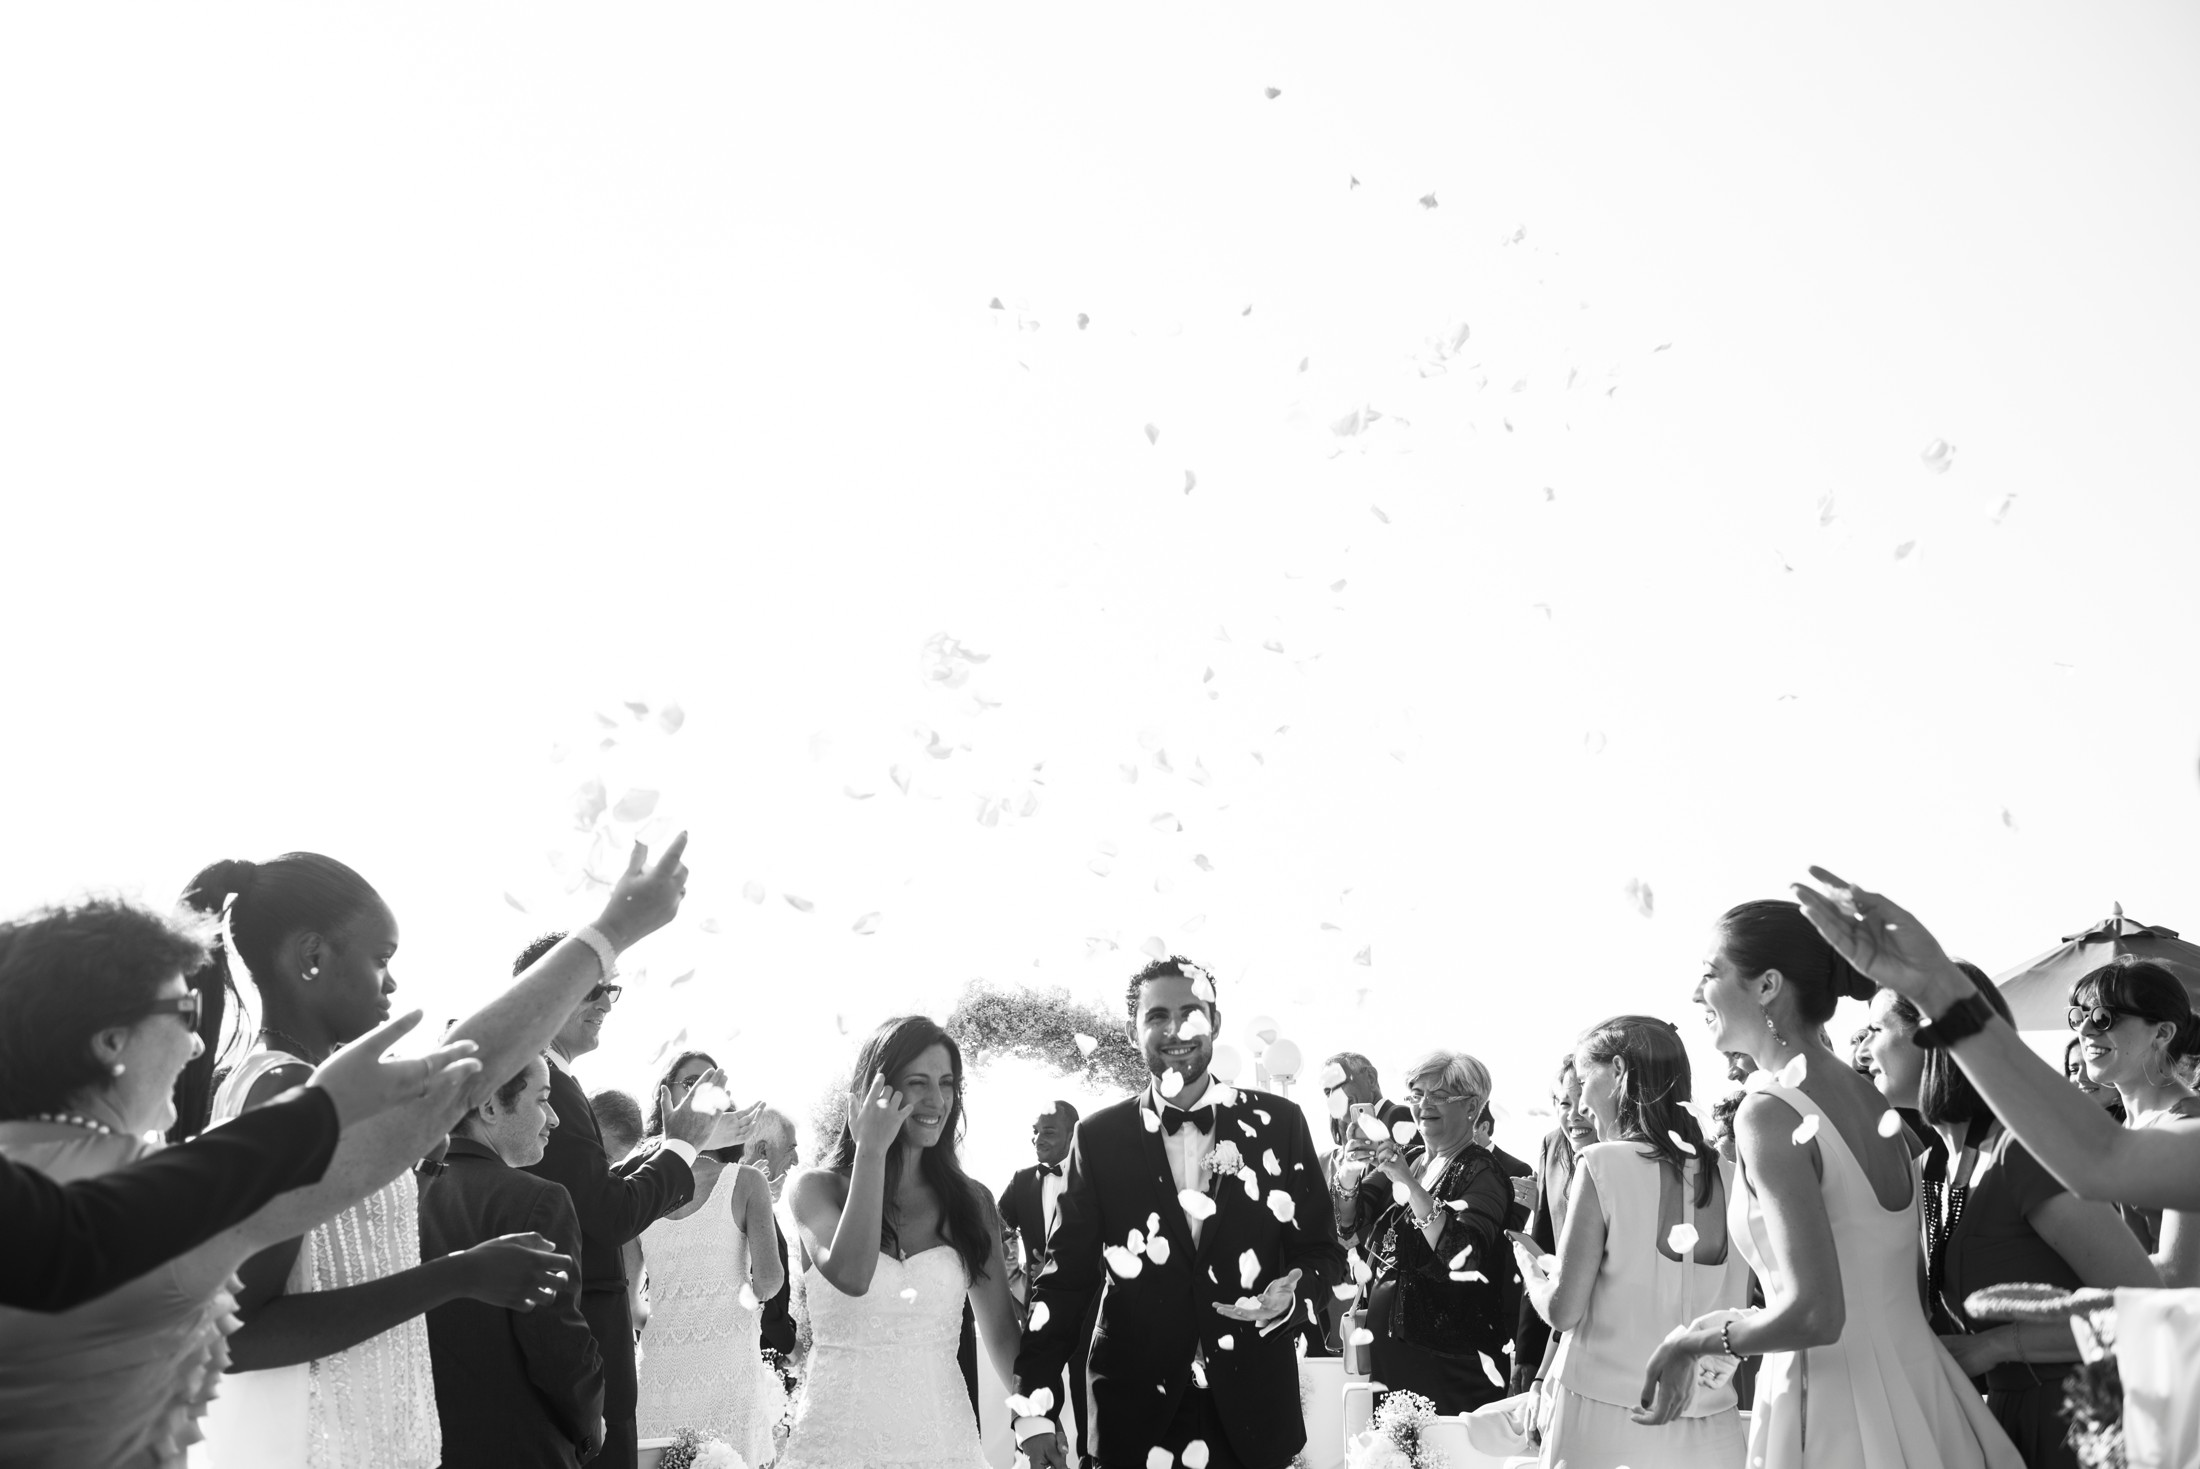 bride and groom after the wedding ceremony with guests throwing white petals